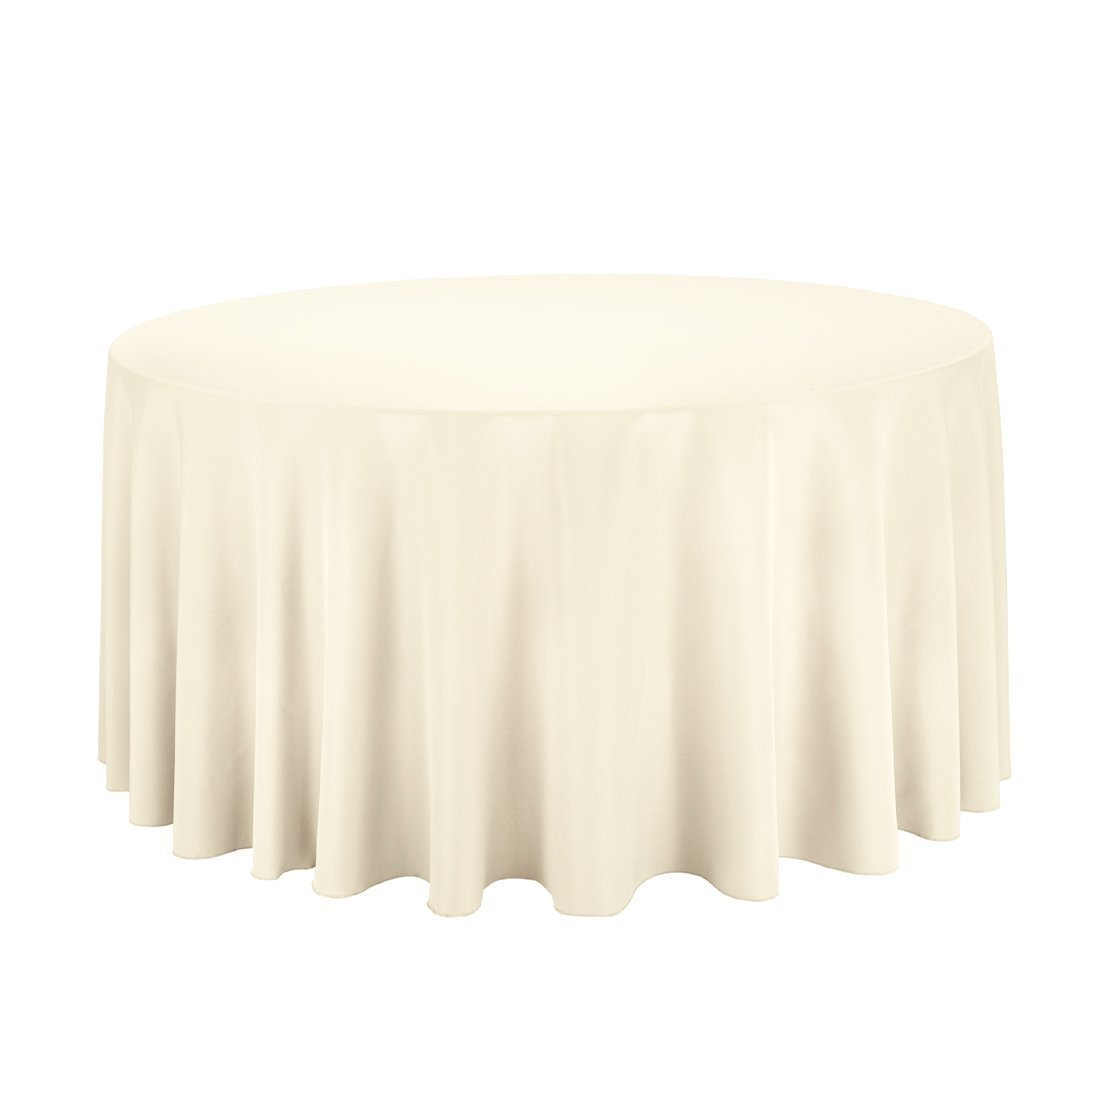 Craft and Party - 10 pcs Round Tablecloth for Home, Party, Wedding or Restaurant Use. (120'' Round Ivory)